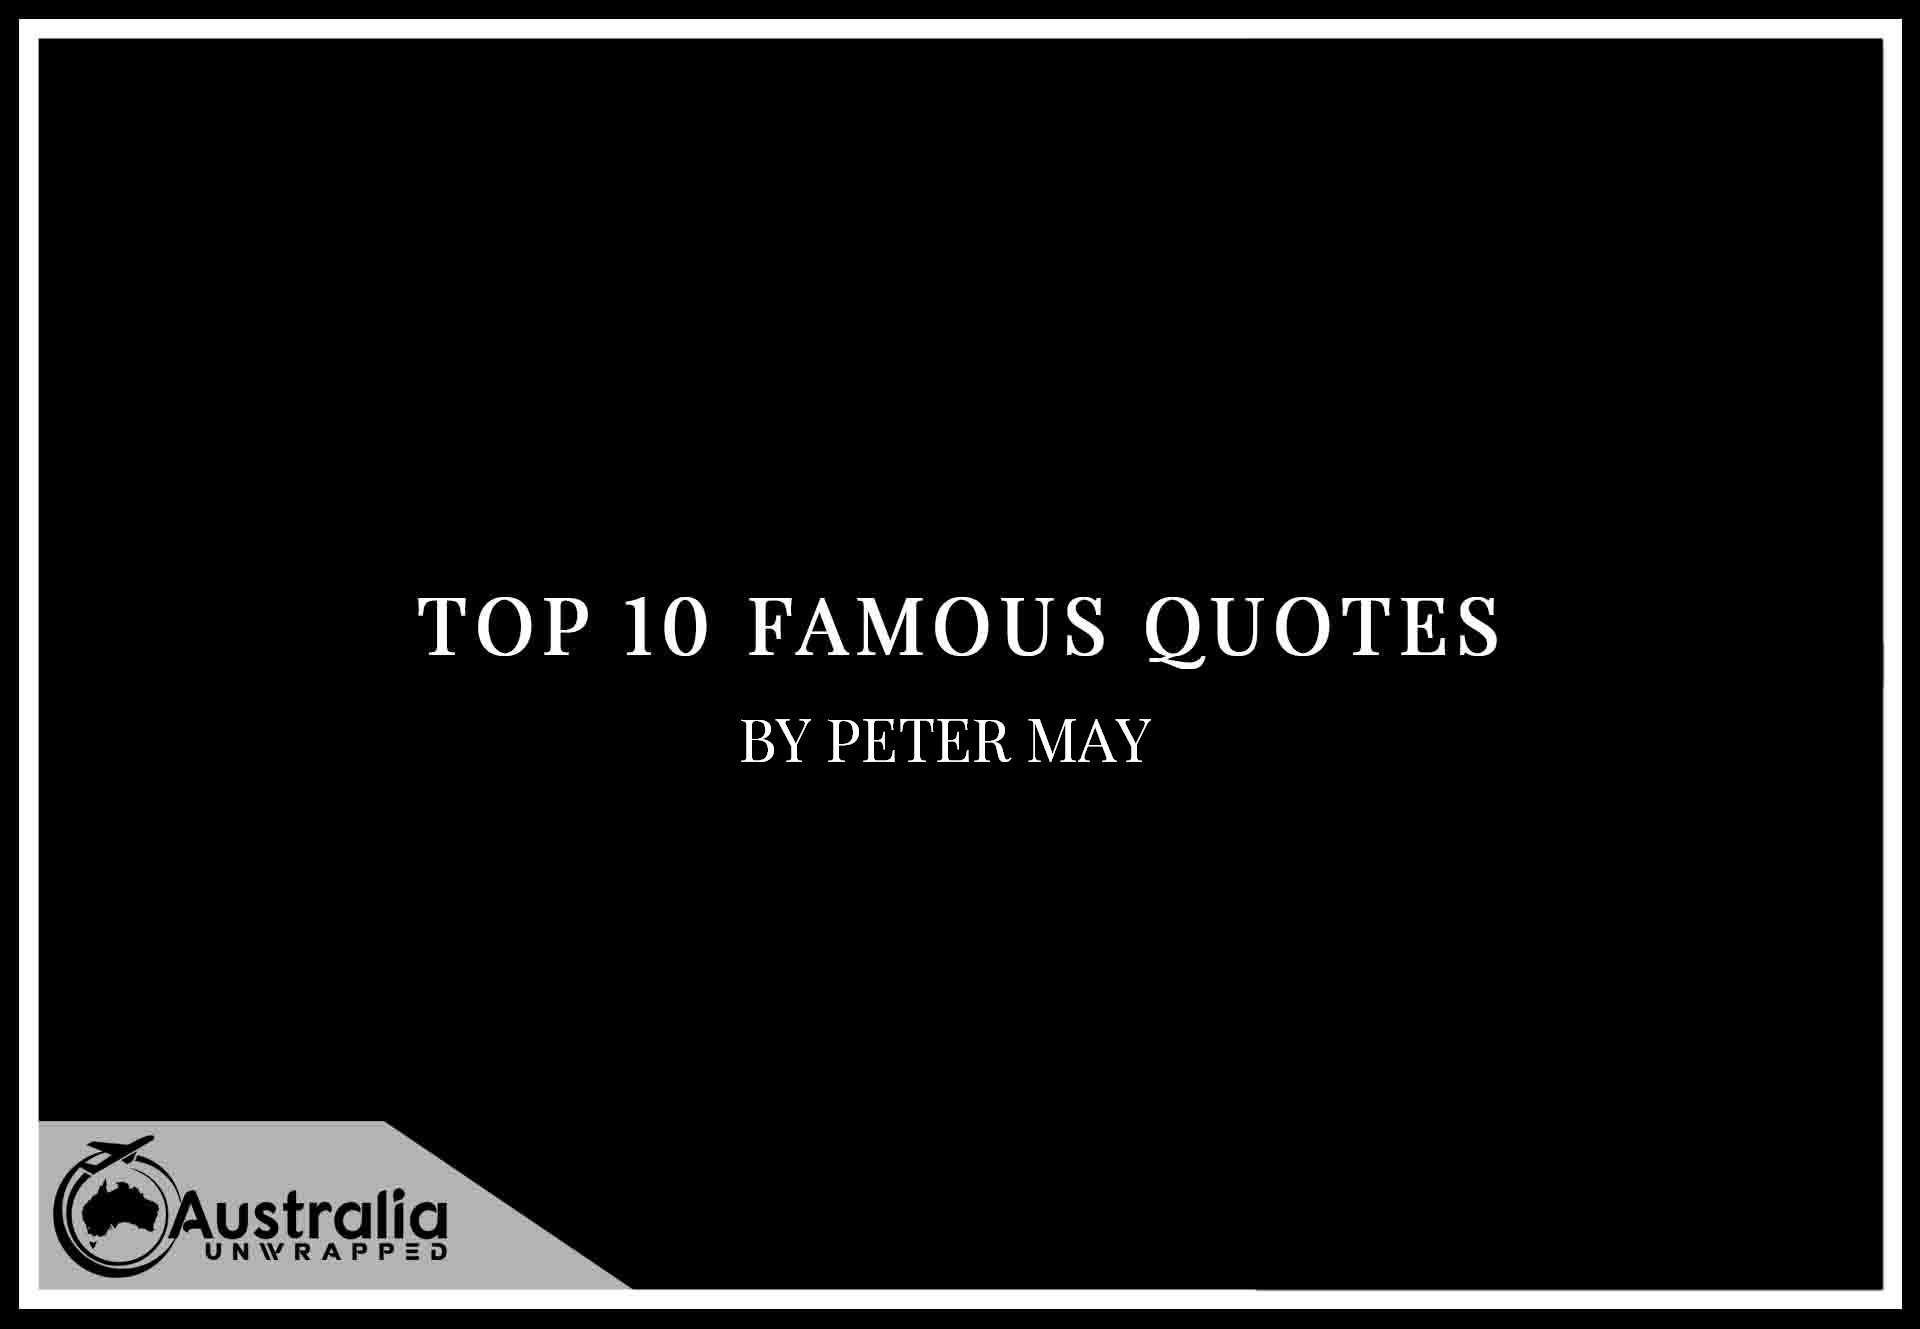 Top 10 Famous Quotes by Author Peter May